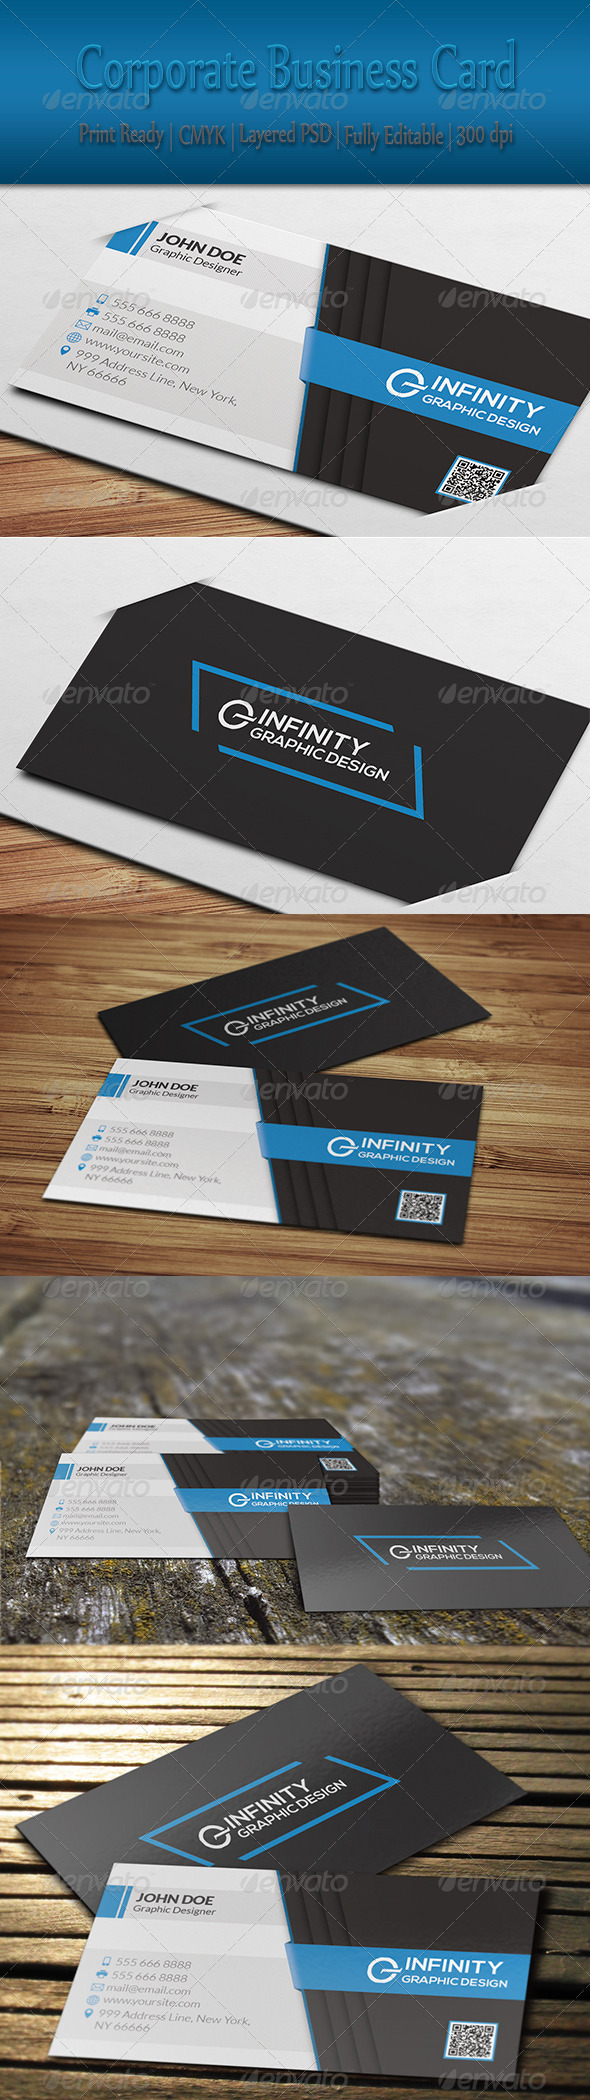 GraphicRiver Corporate Business Card 8428571